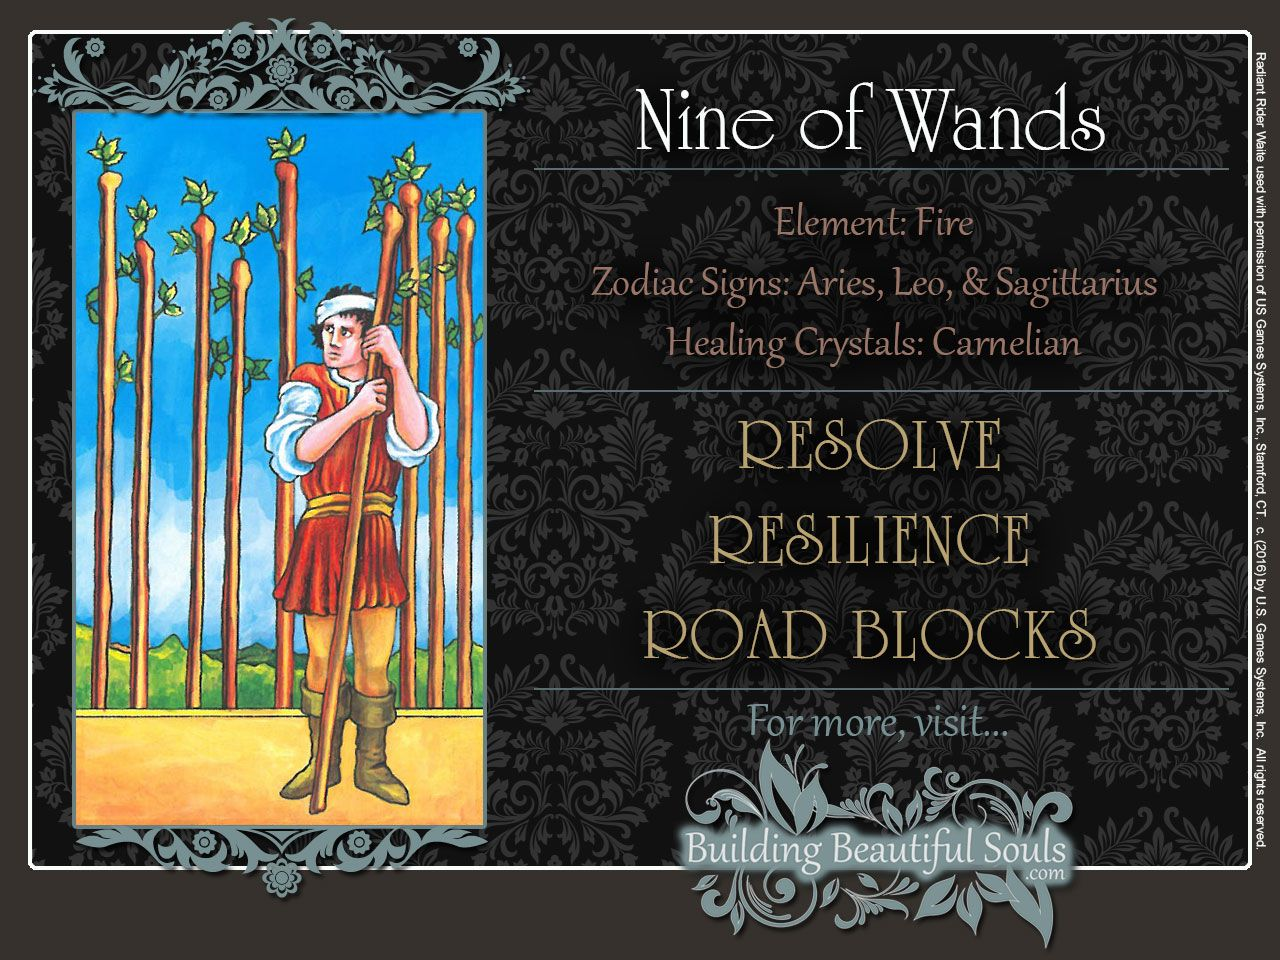 THE Nine of Wands TAROT CARD MEANINGS - UPRIGHT& REVERSED! The Nine of Wands Tarot includes LOVE, NUMEROLOGY, & SYMBOLS for more accurate TAROT READING. #minorarcana #suitofwands #nineofwands #tarot #tarotreading #learntarot #tarotcards #tarotcardreading #tarotcardmeanings #psychic #psychicreadings #divination #oraclecards #riderwaitetarot #numerology #astrology #magic #magick